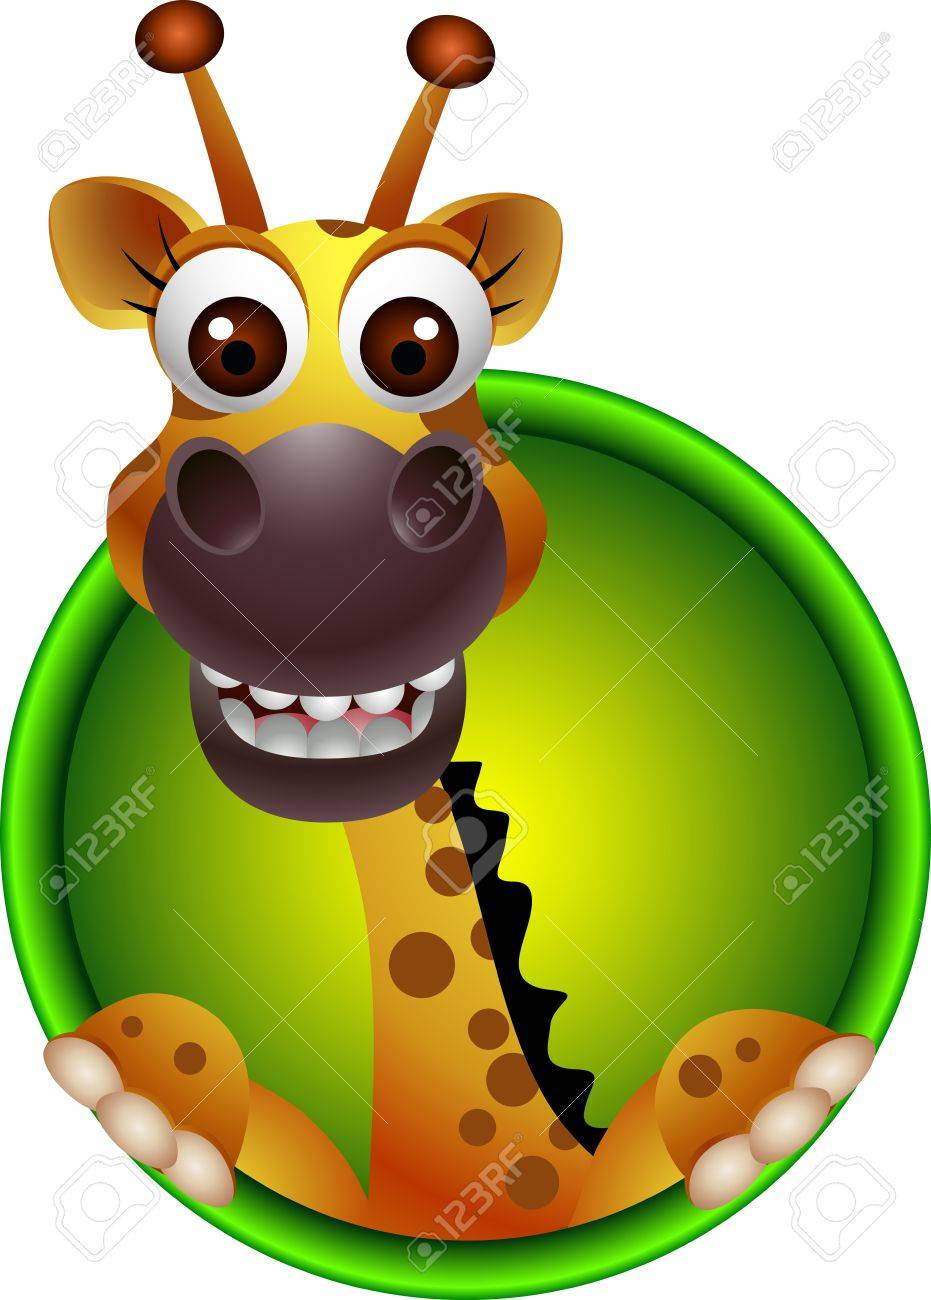 2 452 giraffe head cliparts stock vector and royalty free giraffe